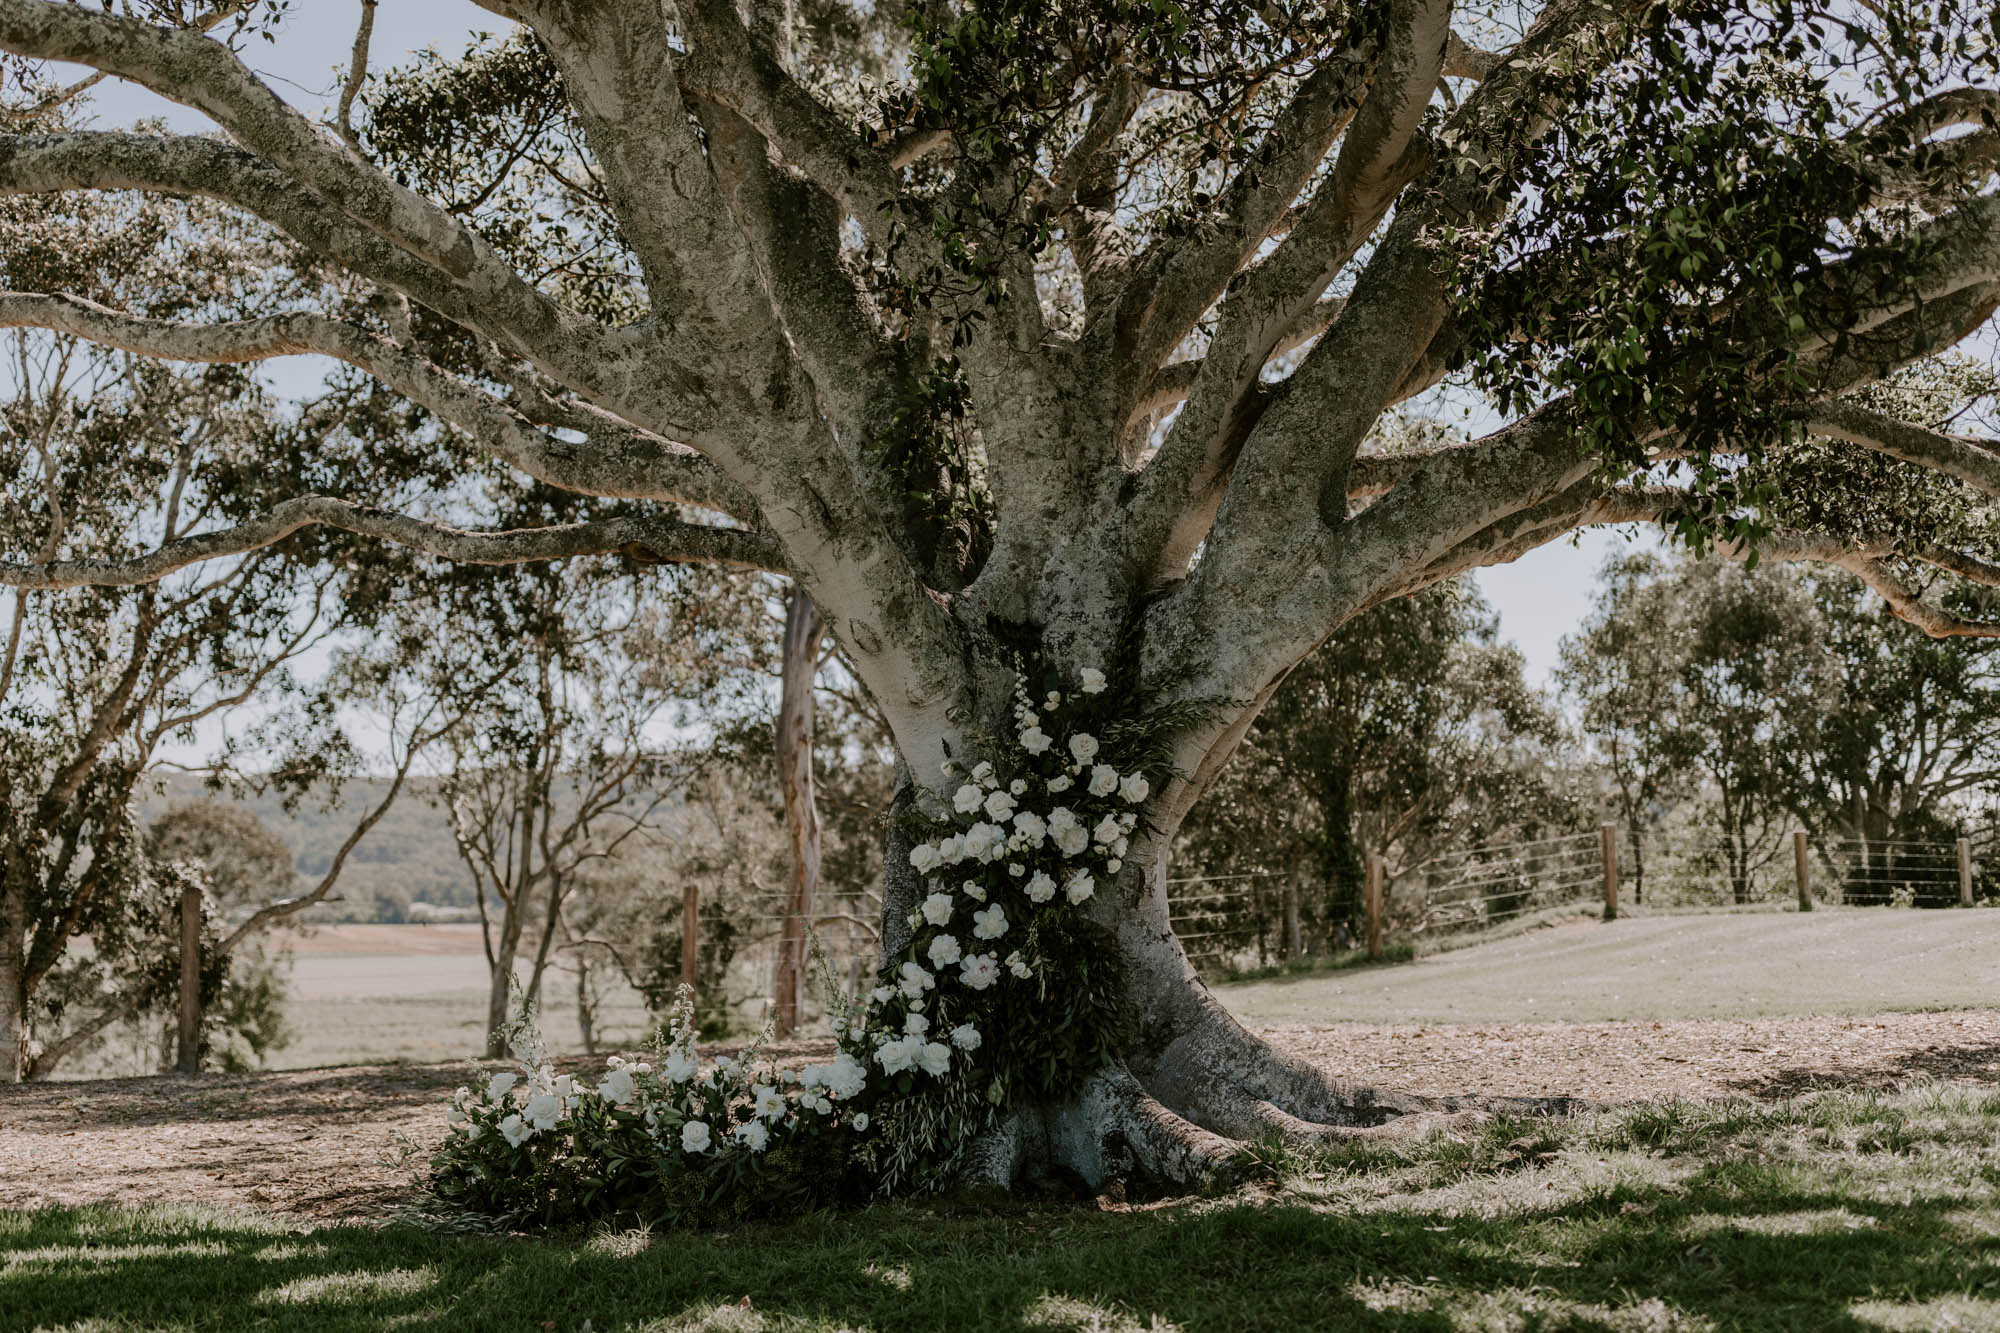 Ceremony tree garland featuring white blooms